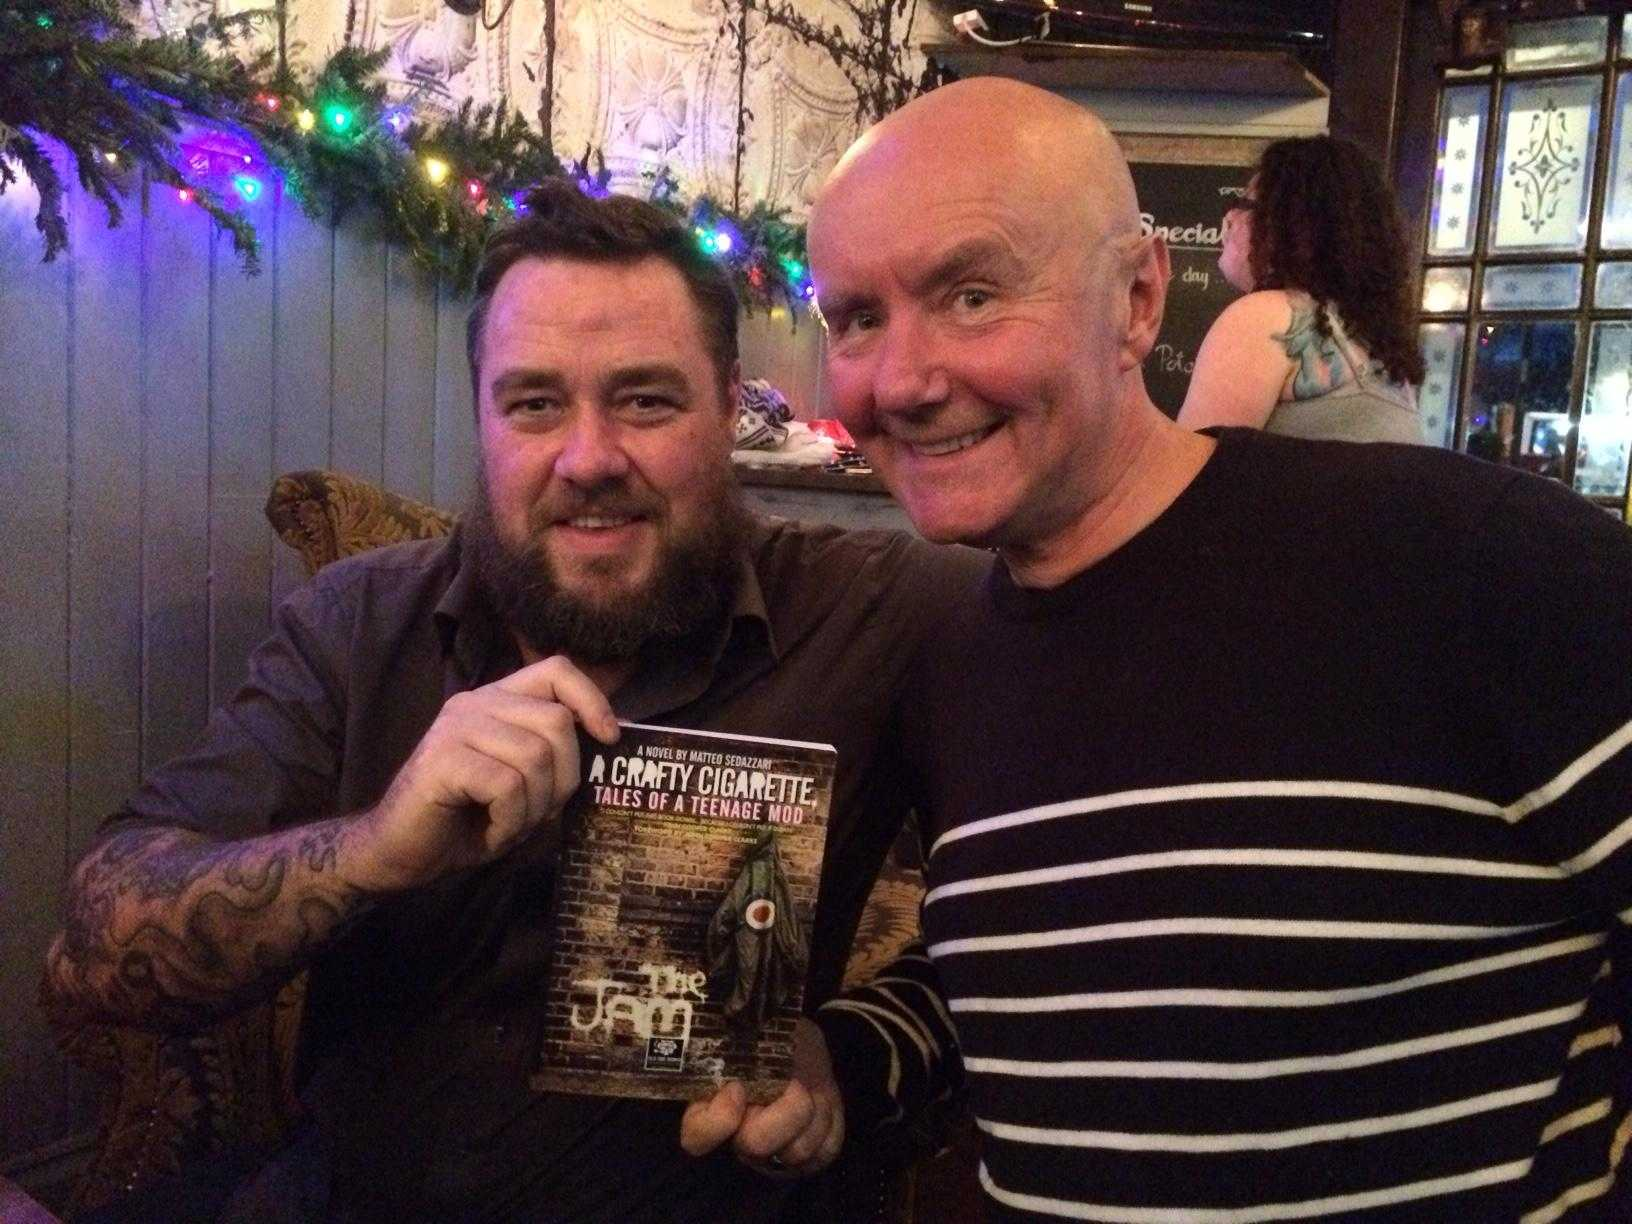 Dean Cavanagh and Irvine Welsh